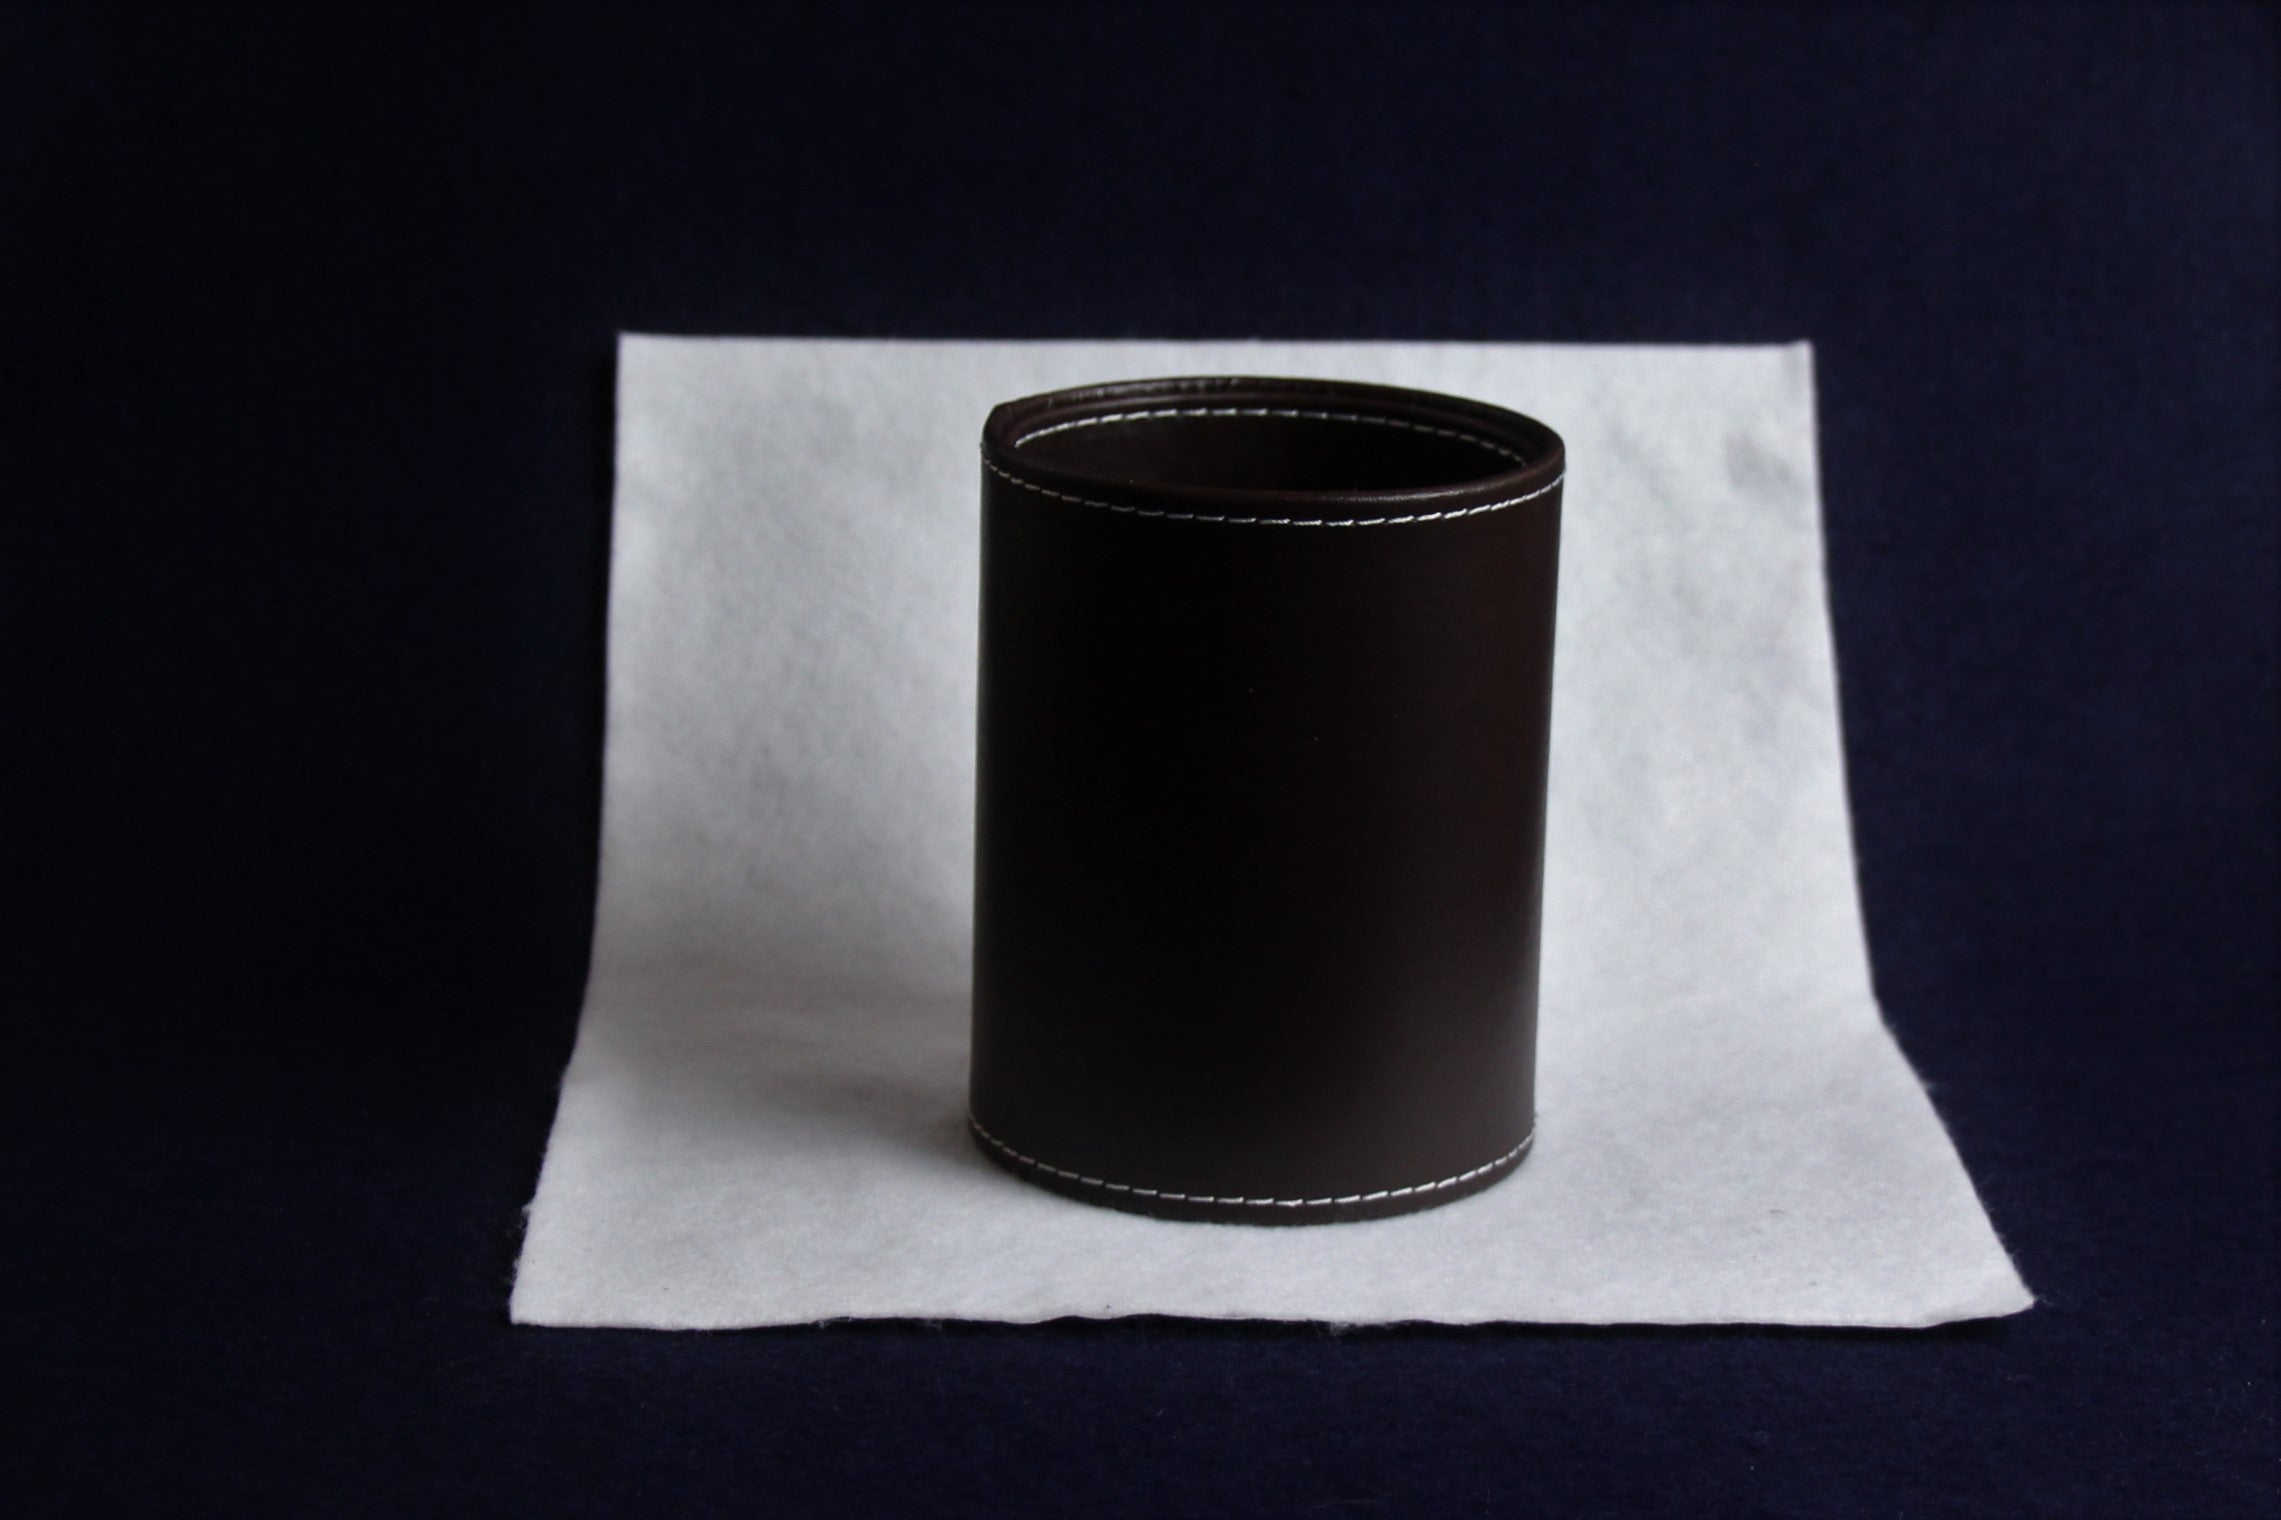 Set of 5 qalams for Arabic calligraphy with ebony nibs: 1 to 5 mm - black handle